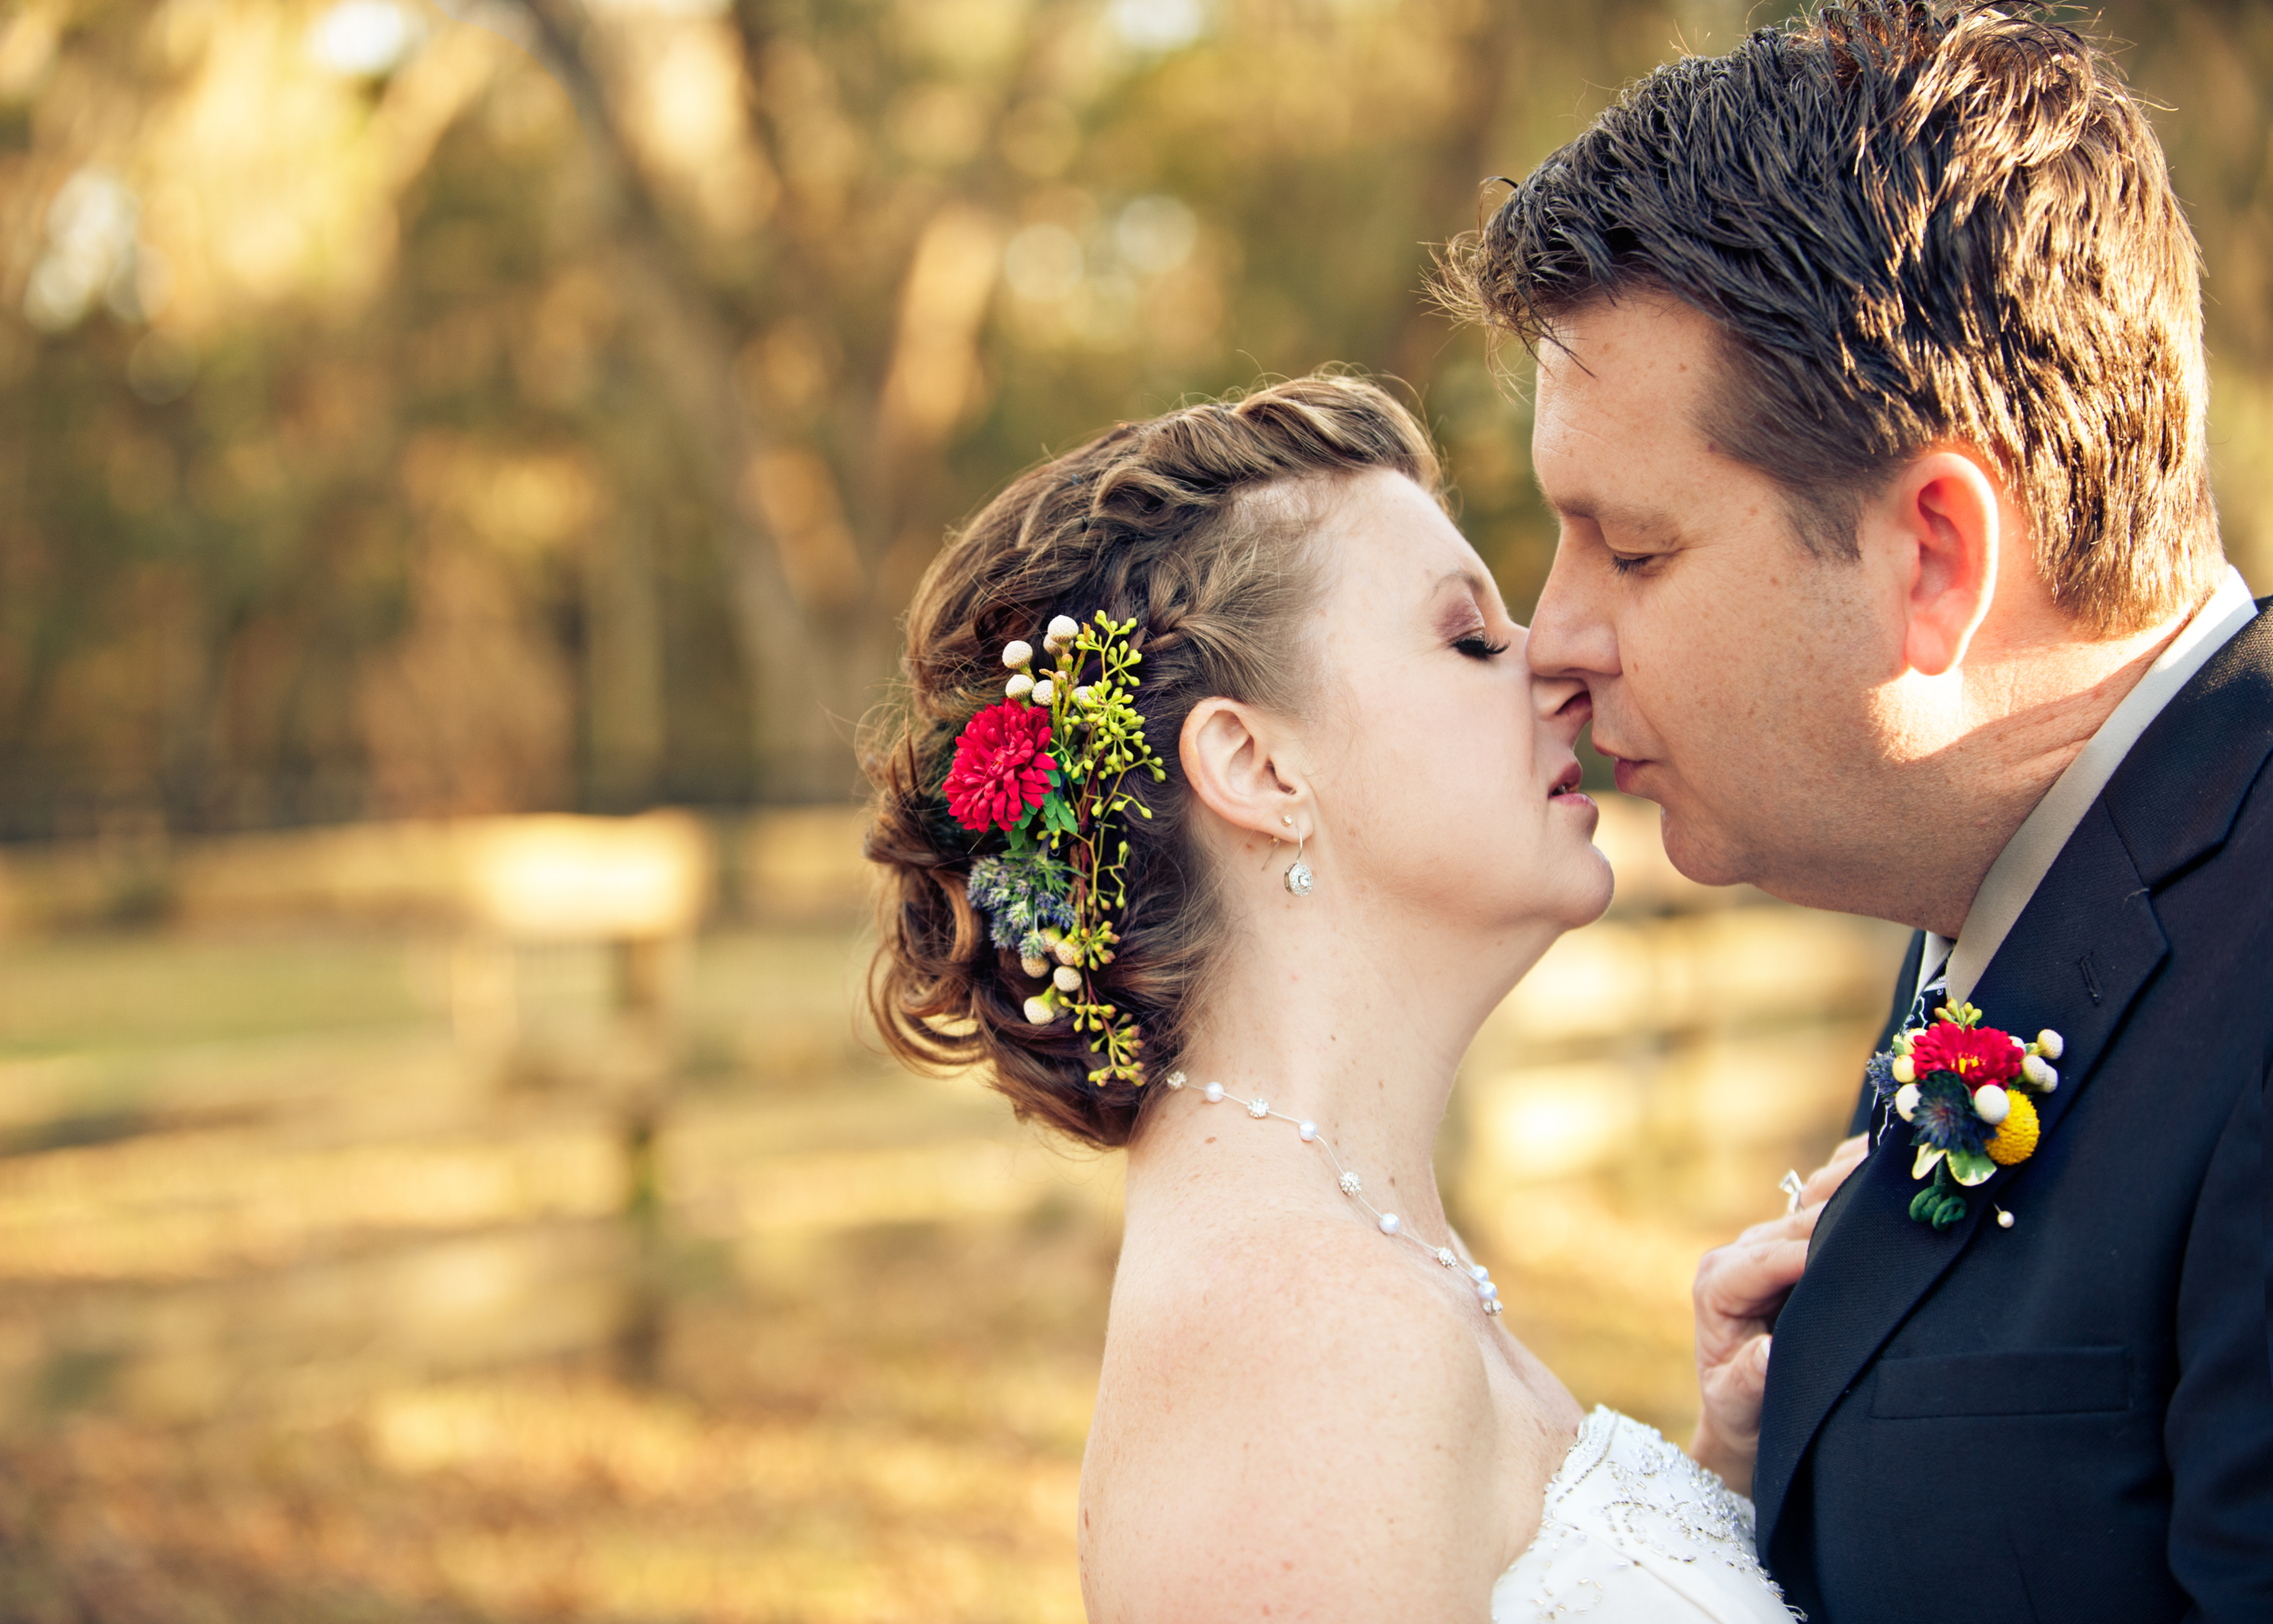 Bride and Groom kiss during their ceremony at their rural ceremony in Florida.jpg